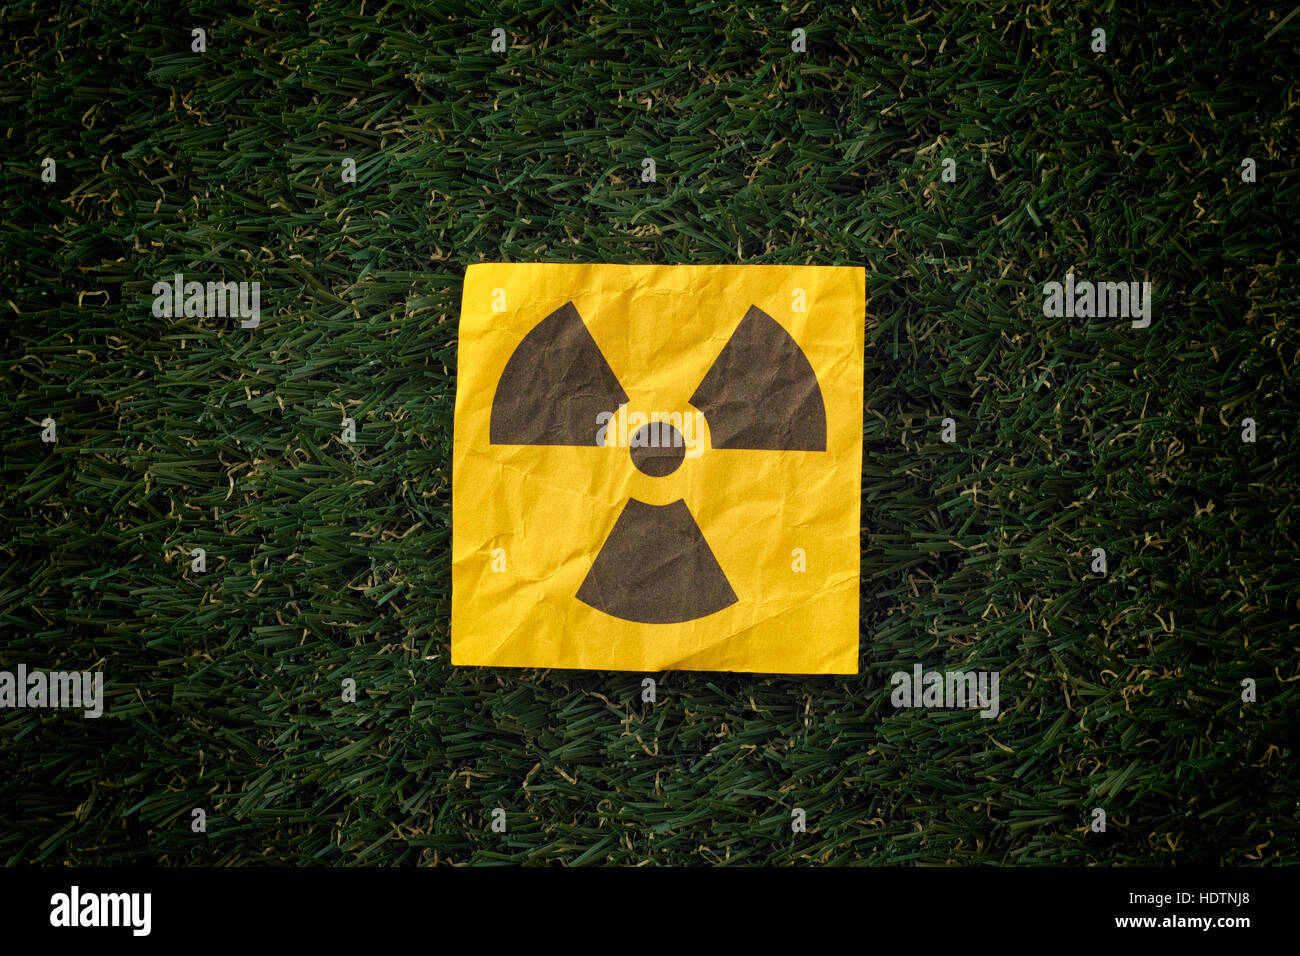 Radiation warning sign on a green grass. Close up. - Stock Image